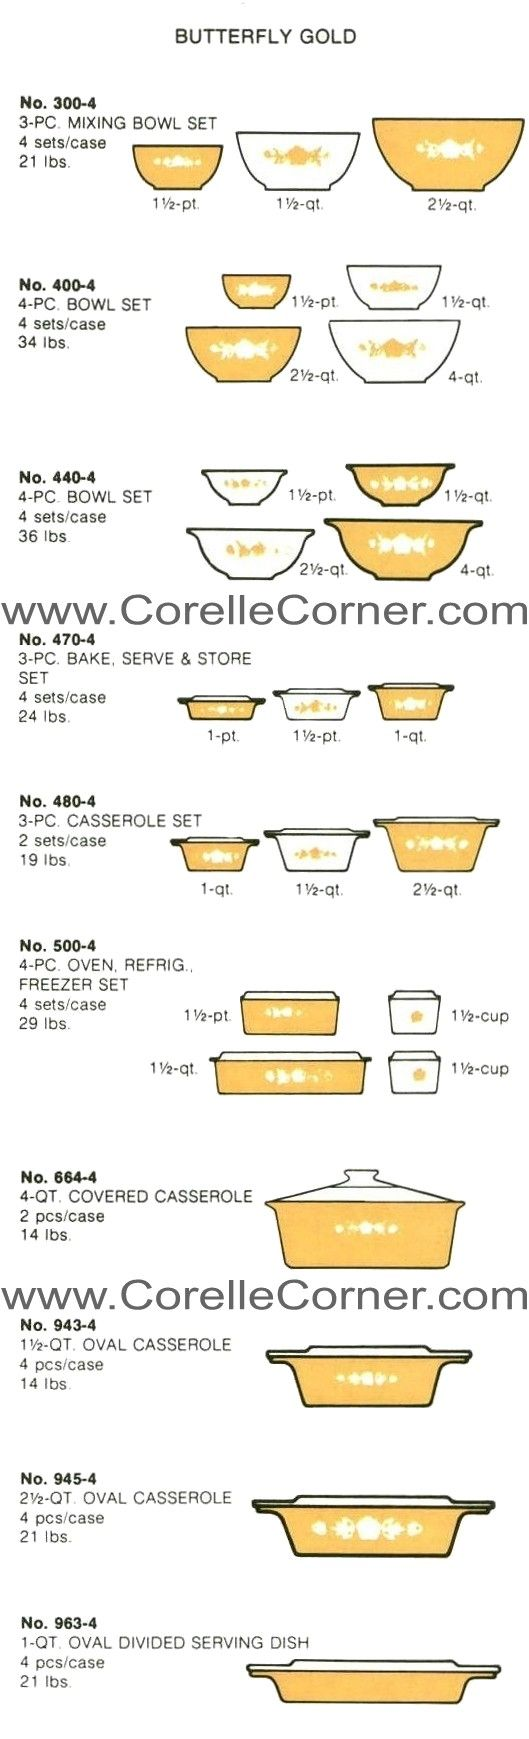 Butterfly Gold, image from 1976 Pyrex Catalogue